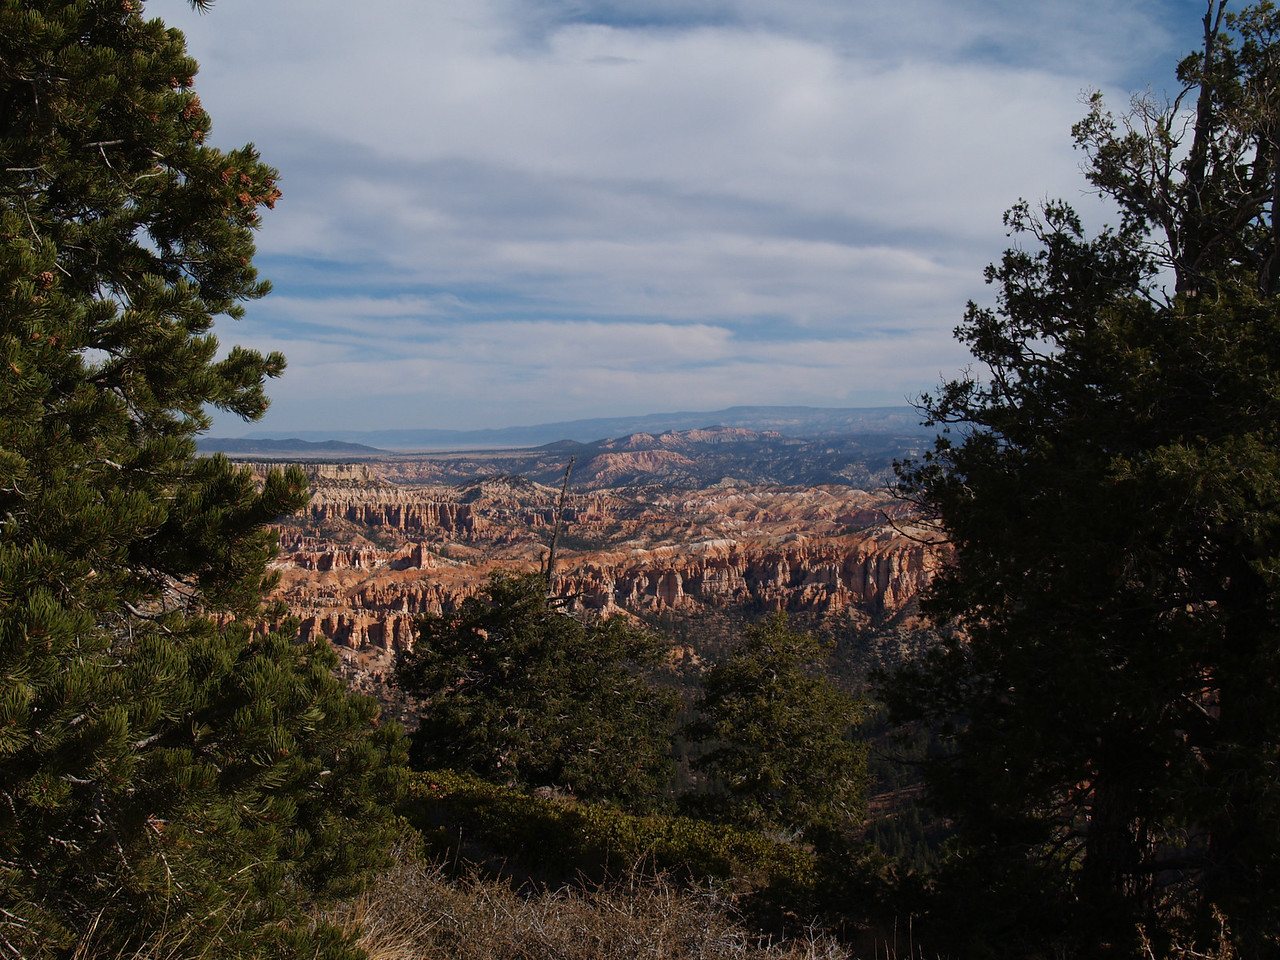 2005-10-17 - Bryce framed by trees